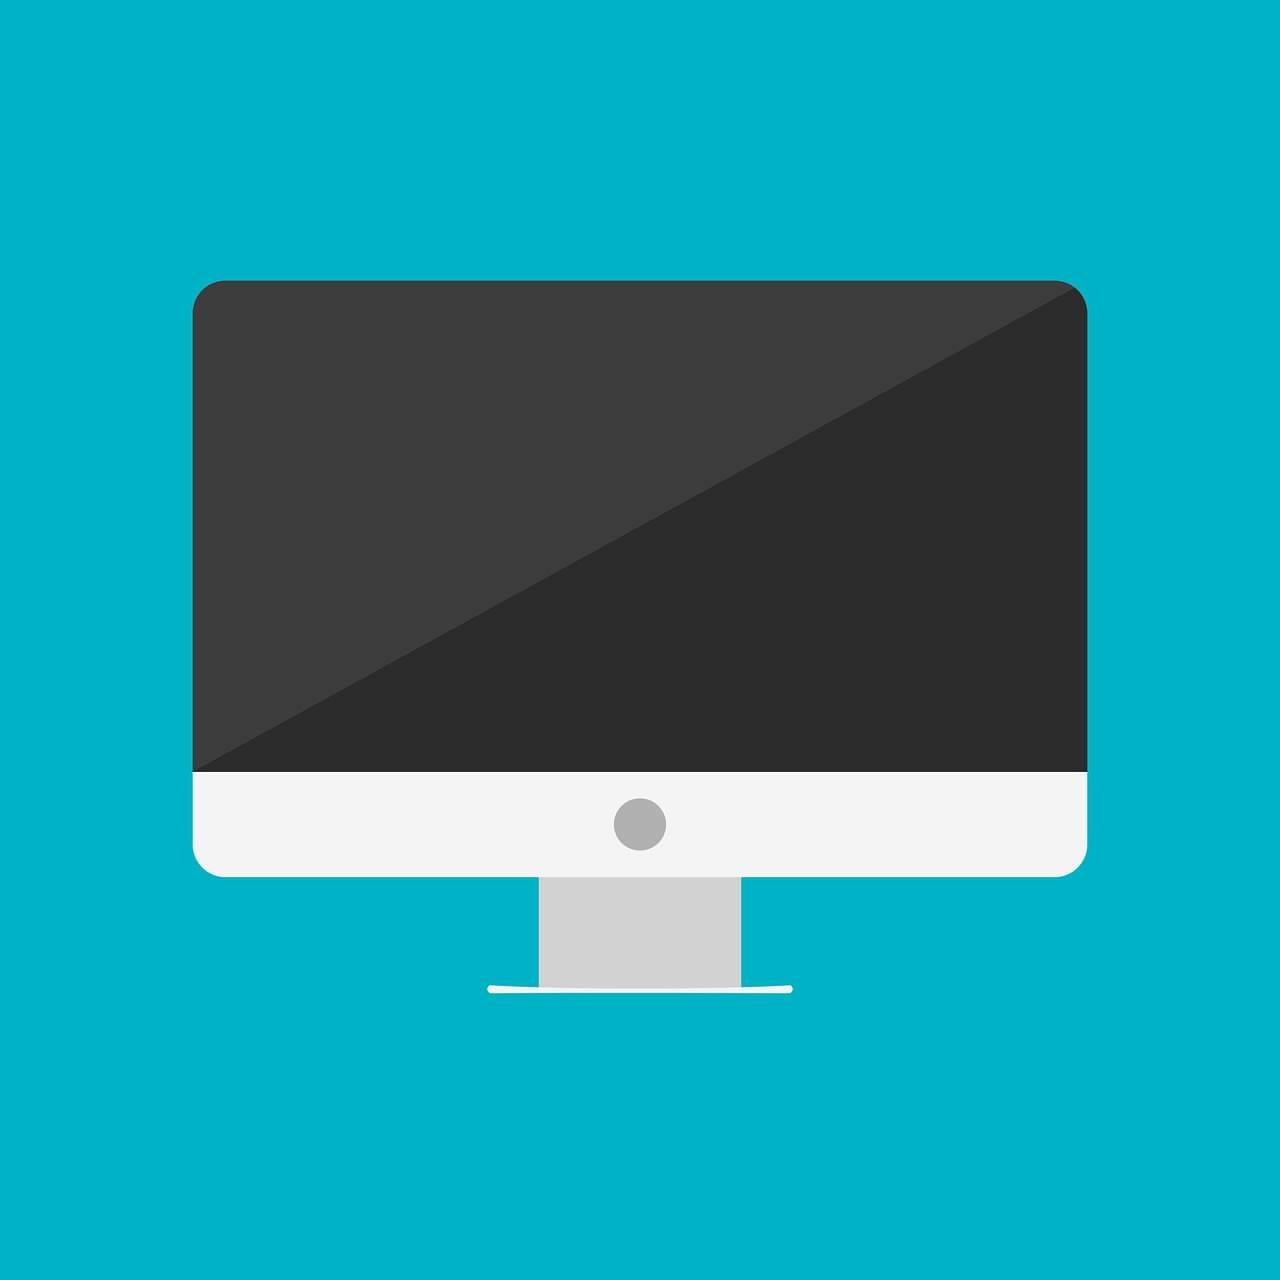 GIF, PNG, JPG or SVG. Which One To Use? — SitePoint.